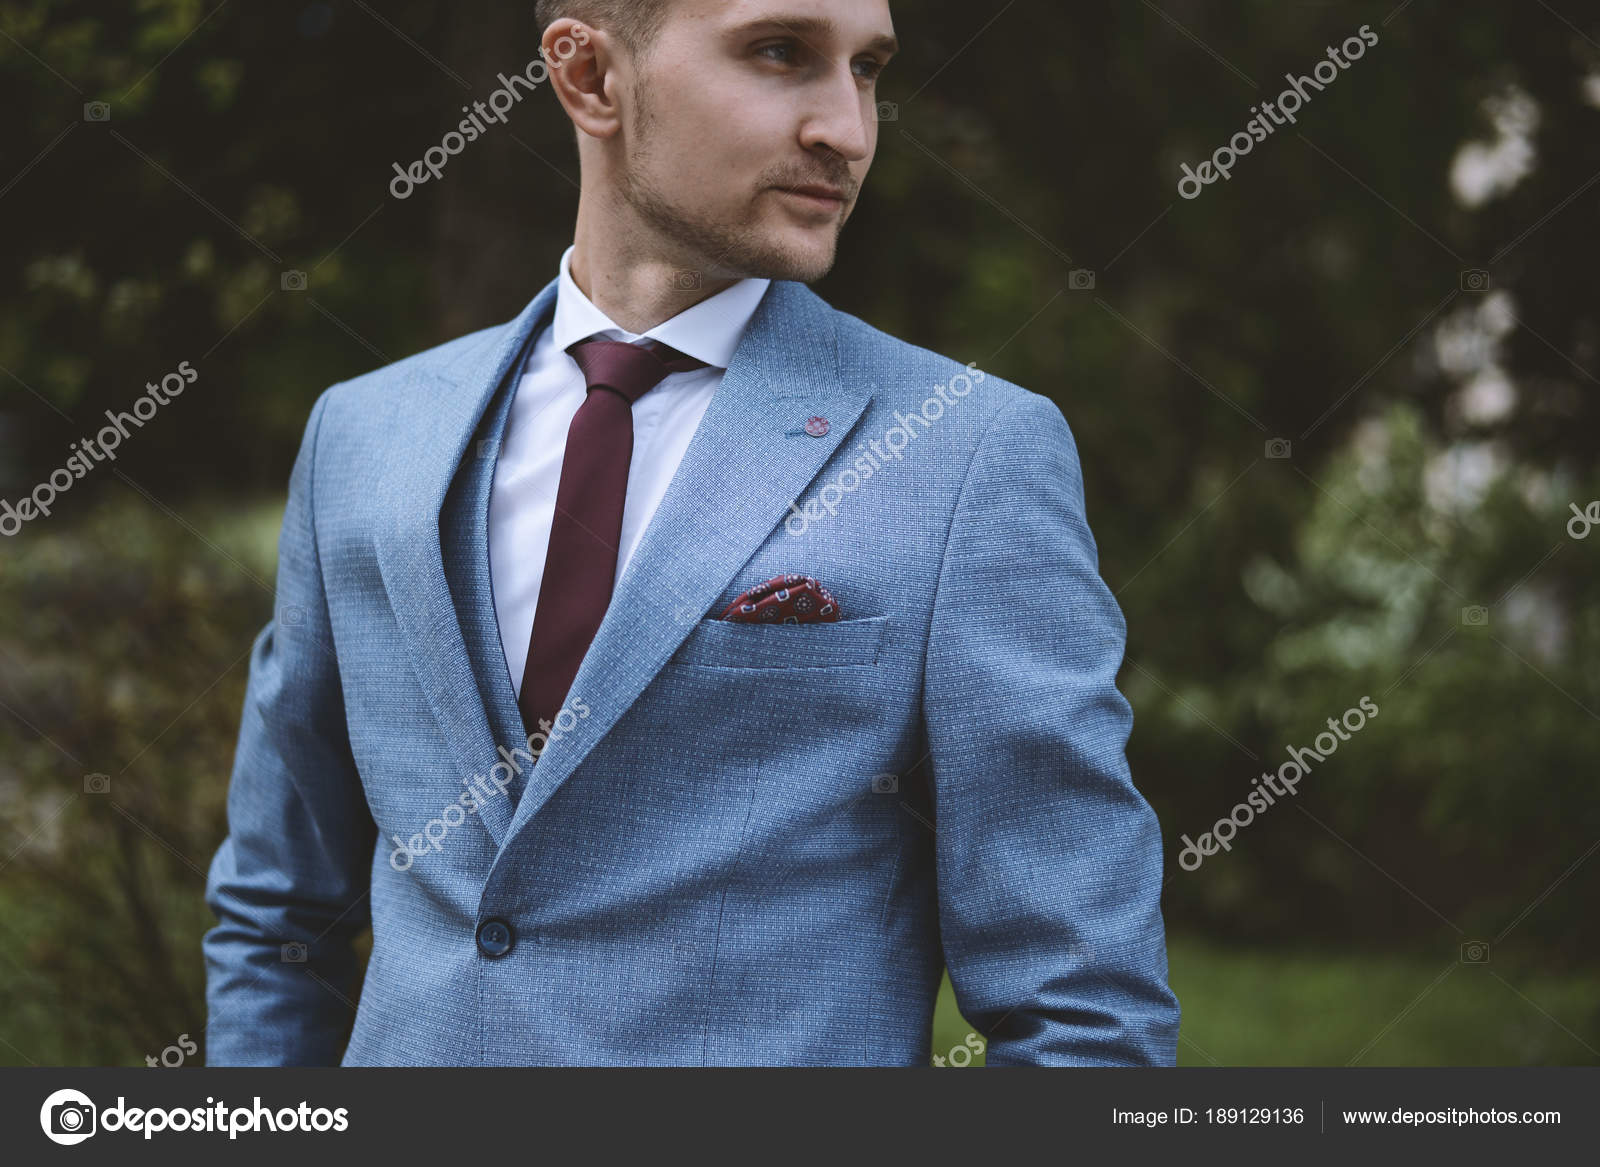 Young Groom Suit Wedding — Stock Photo © kadrby #189129136